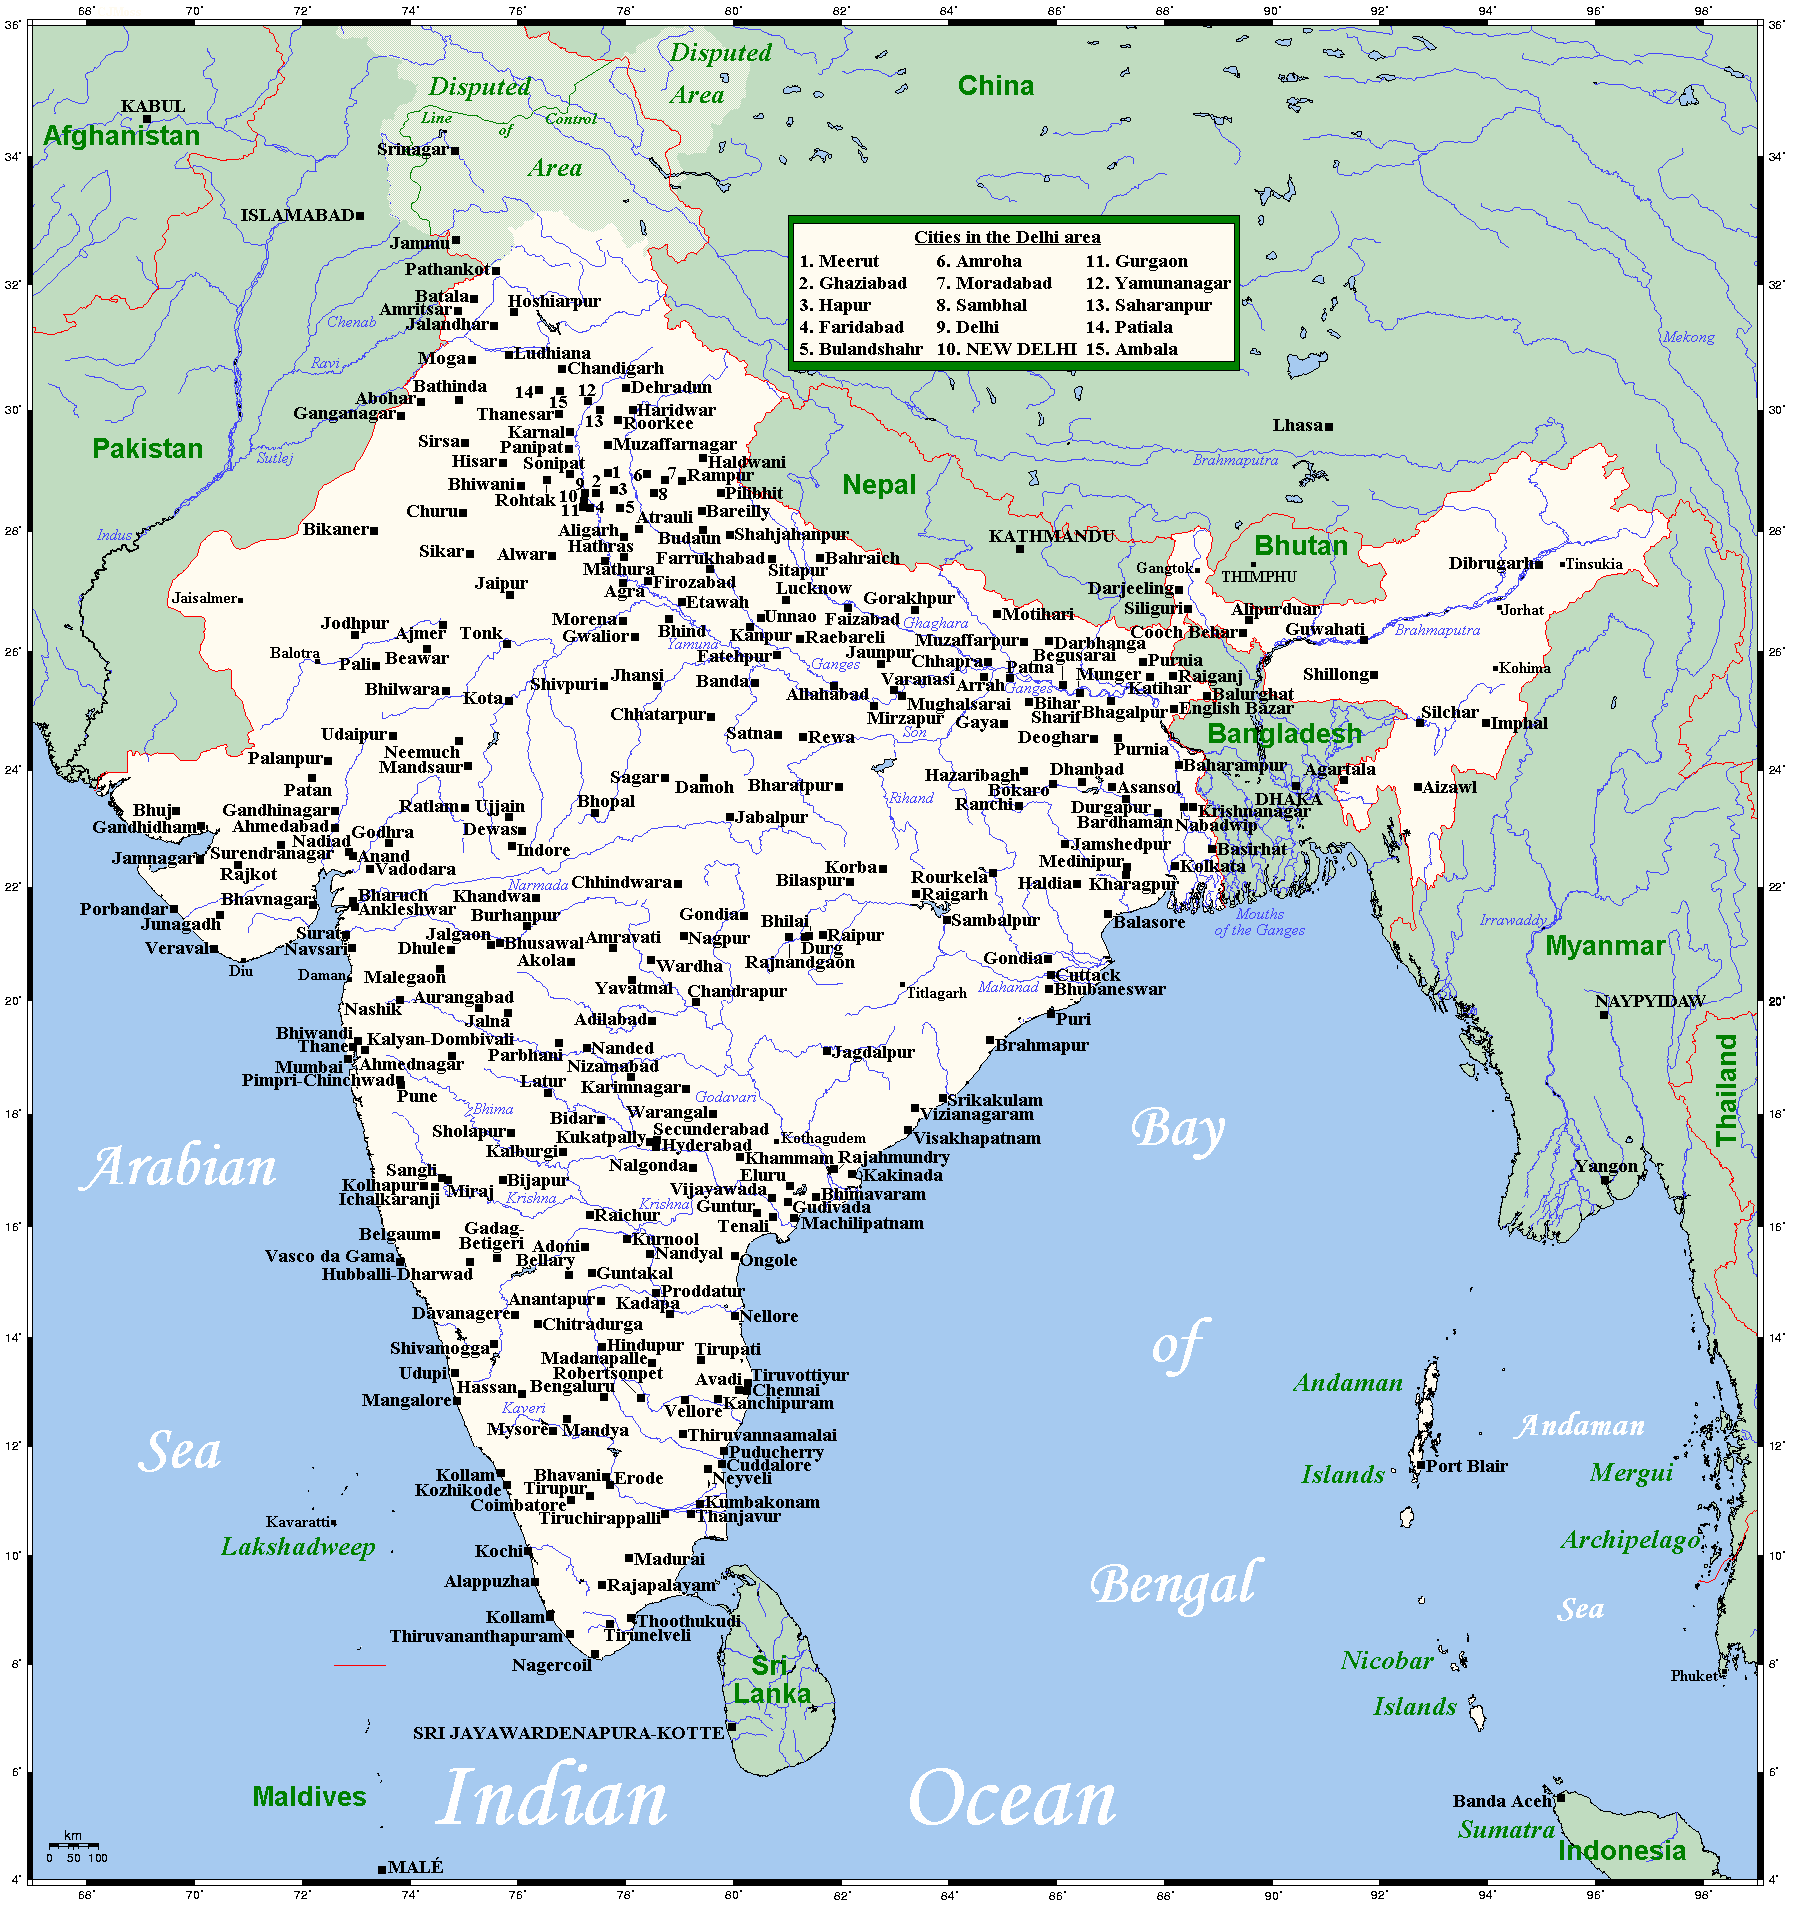 Cities of India: a list of the largest 33